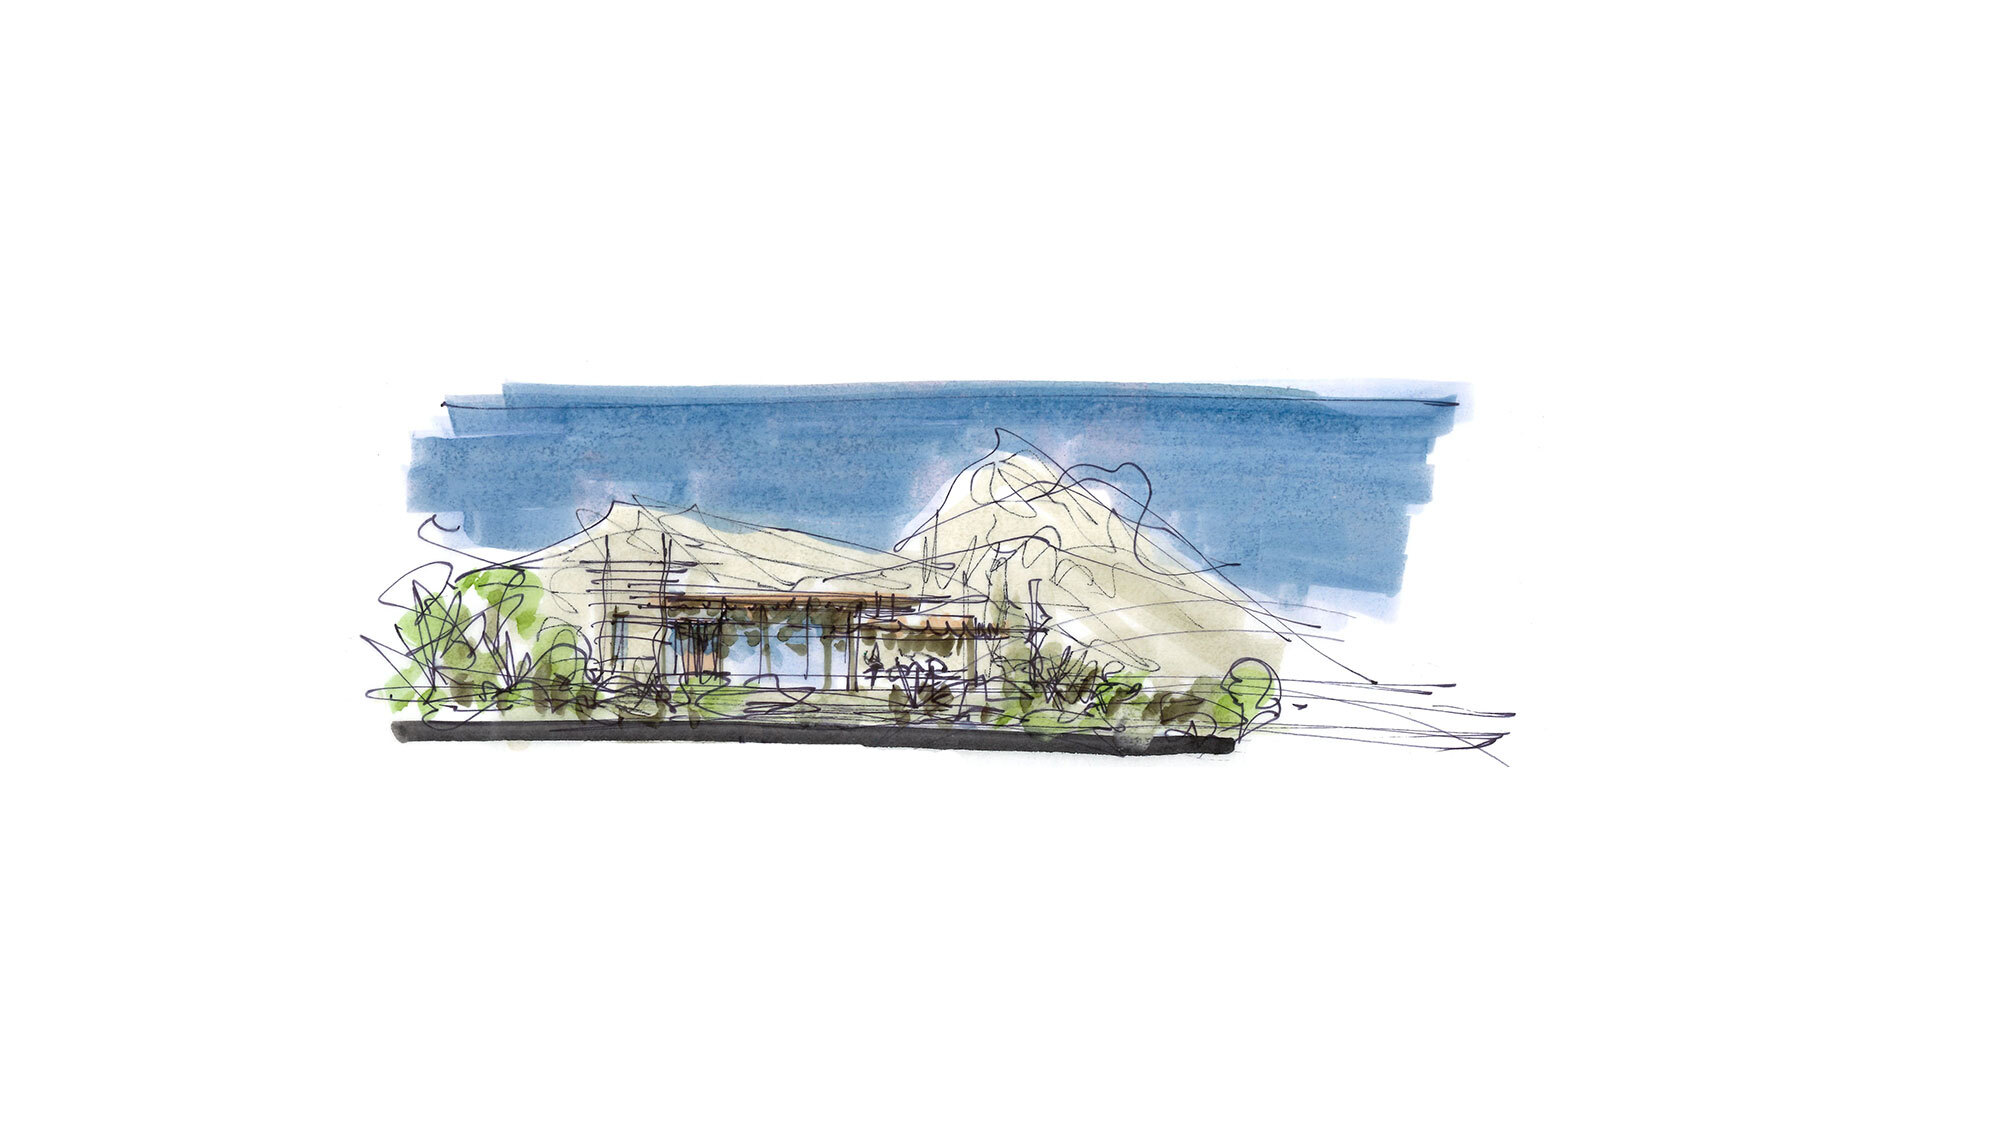 CCY Architects Coral Mountain Sketches 1